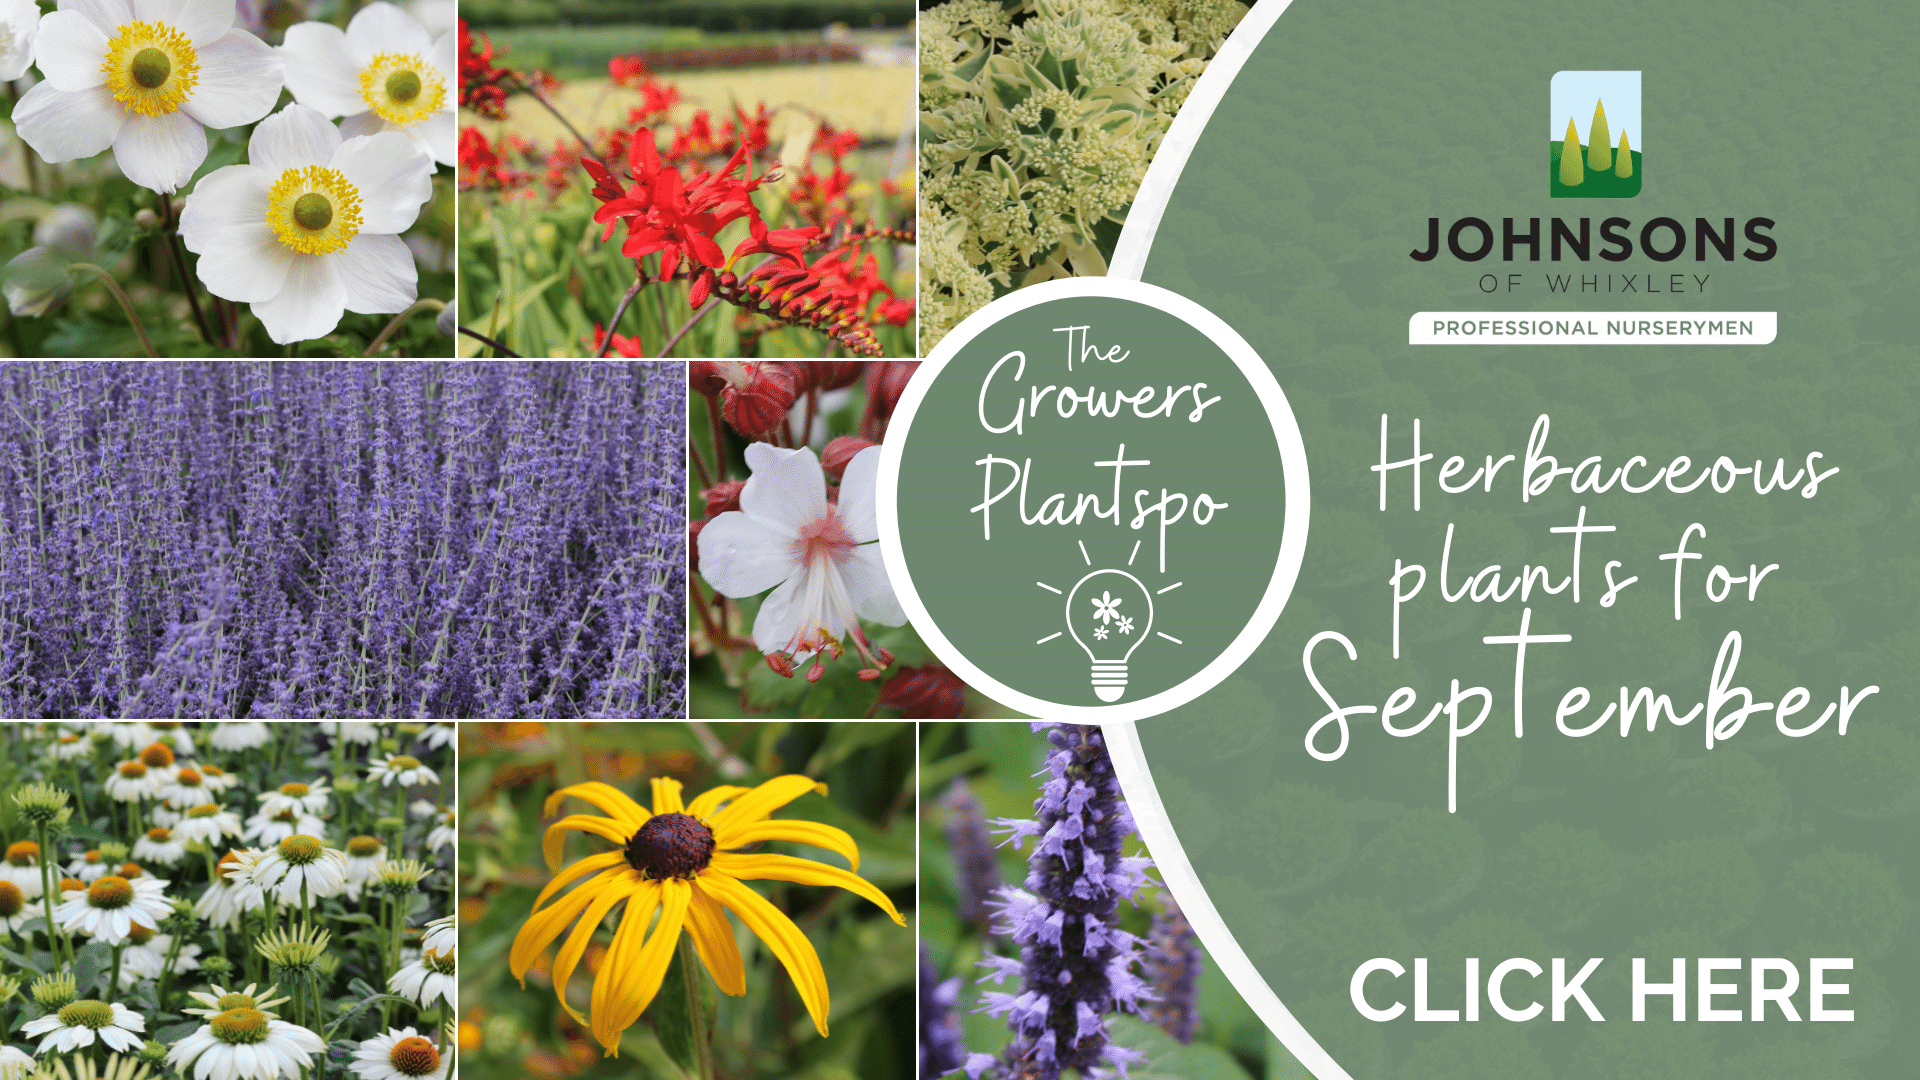 The Growers Plantspo - September Herbaceous